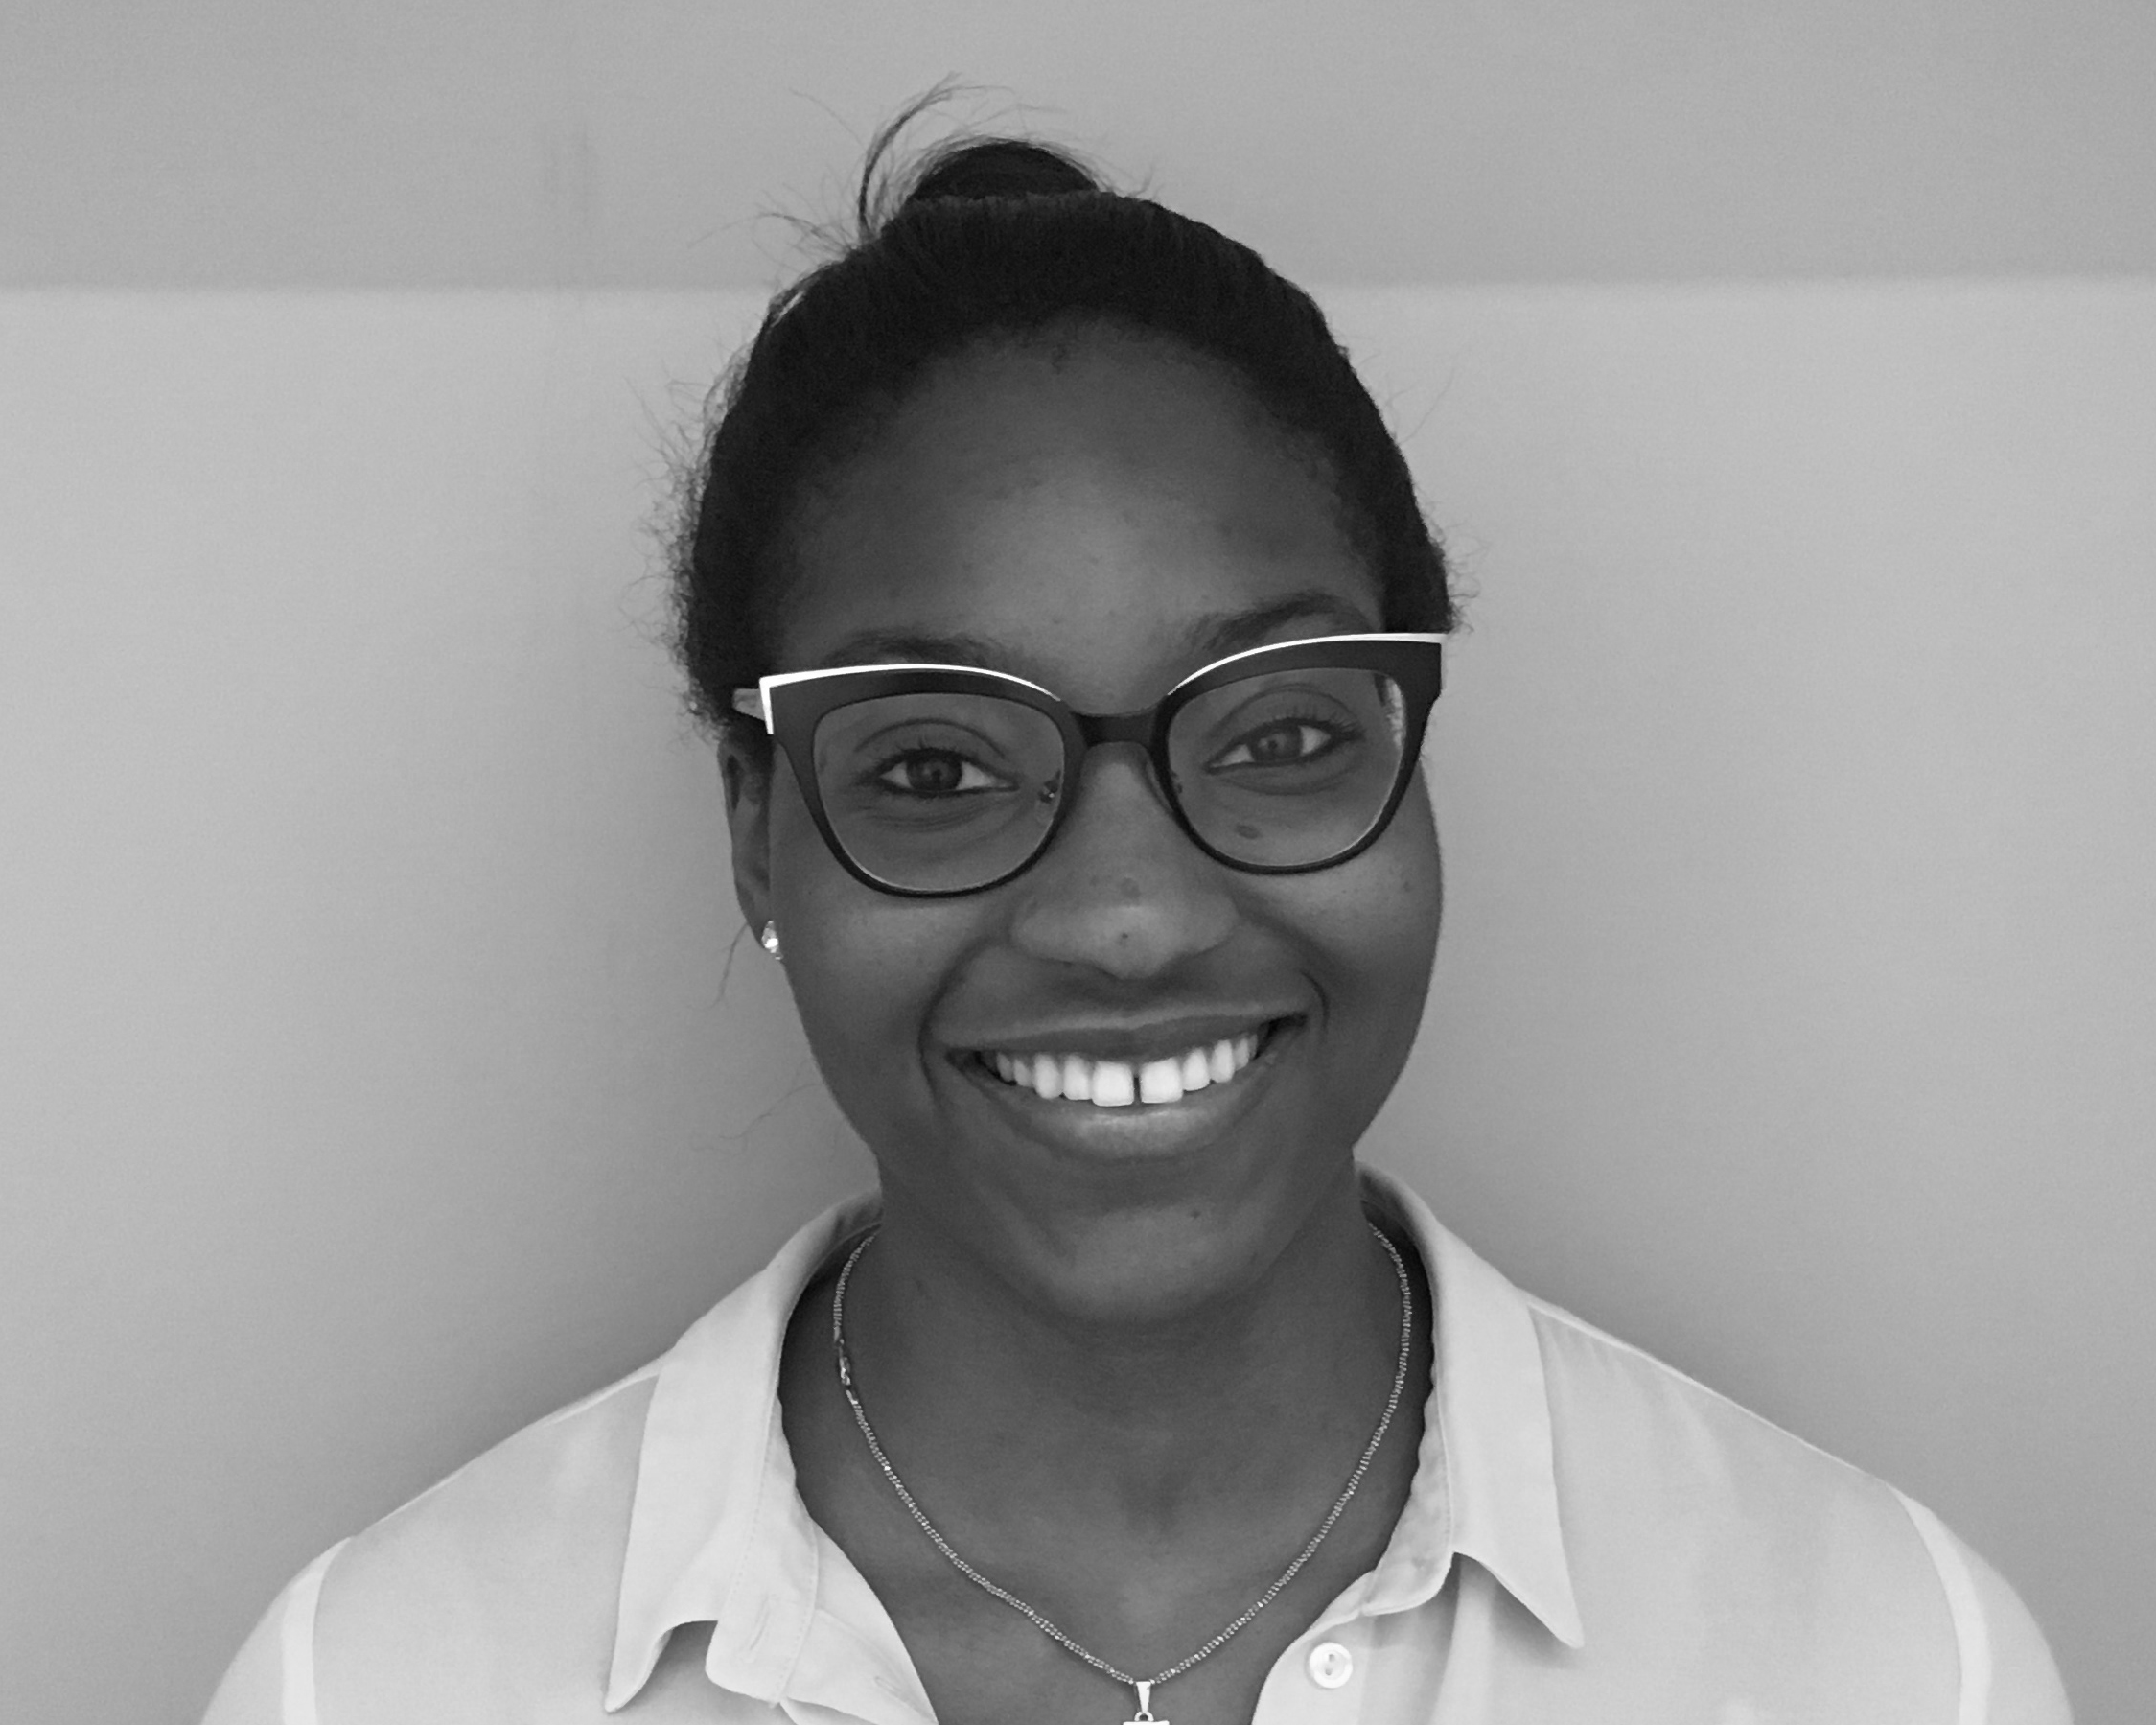 Oyin graduated from Loughborough University as a Chemical Engineer in July 2017. She then joined the Energy Team at BuroHappold Engineering […]